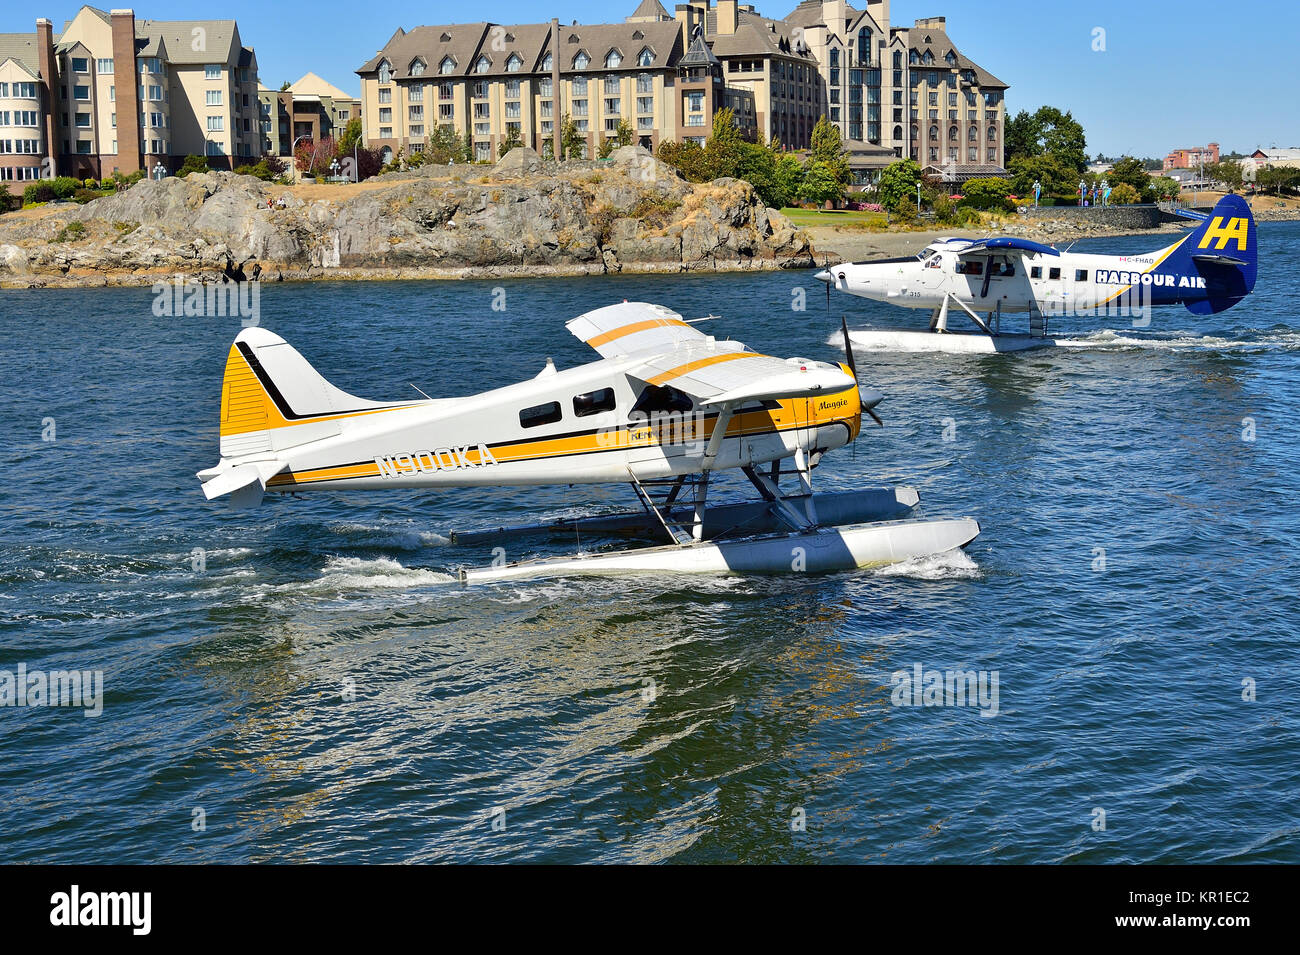 Two commuter aircraft taxi by on another at the busy Victoria harbour on Vancouver Island British Columbia, Canada. - Stock Image